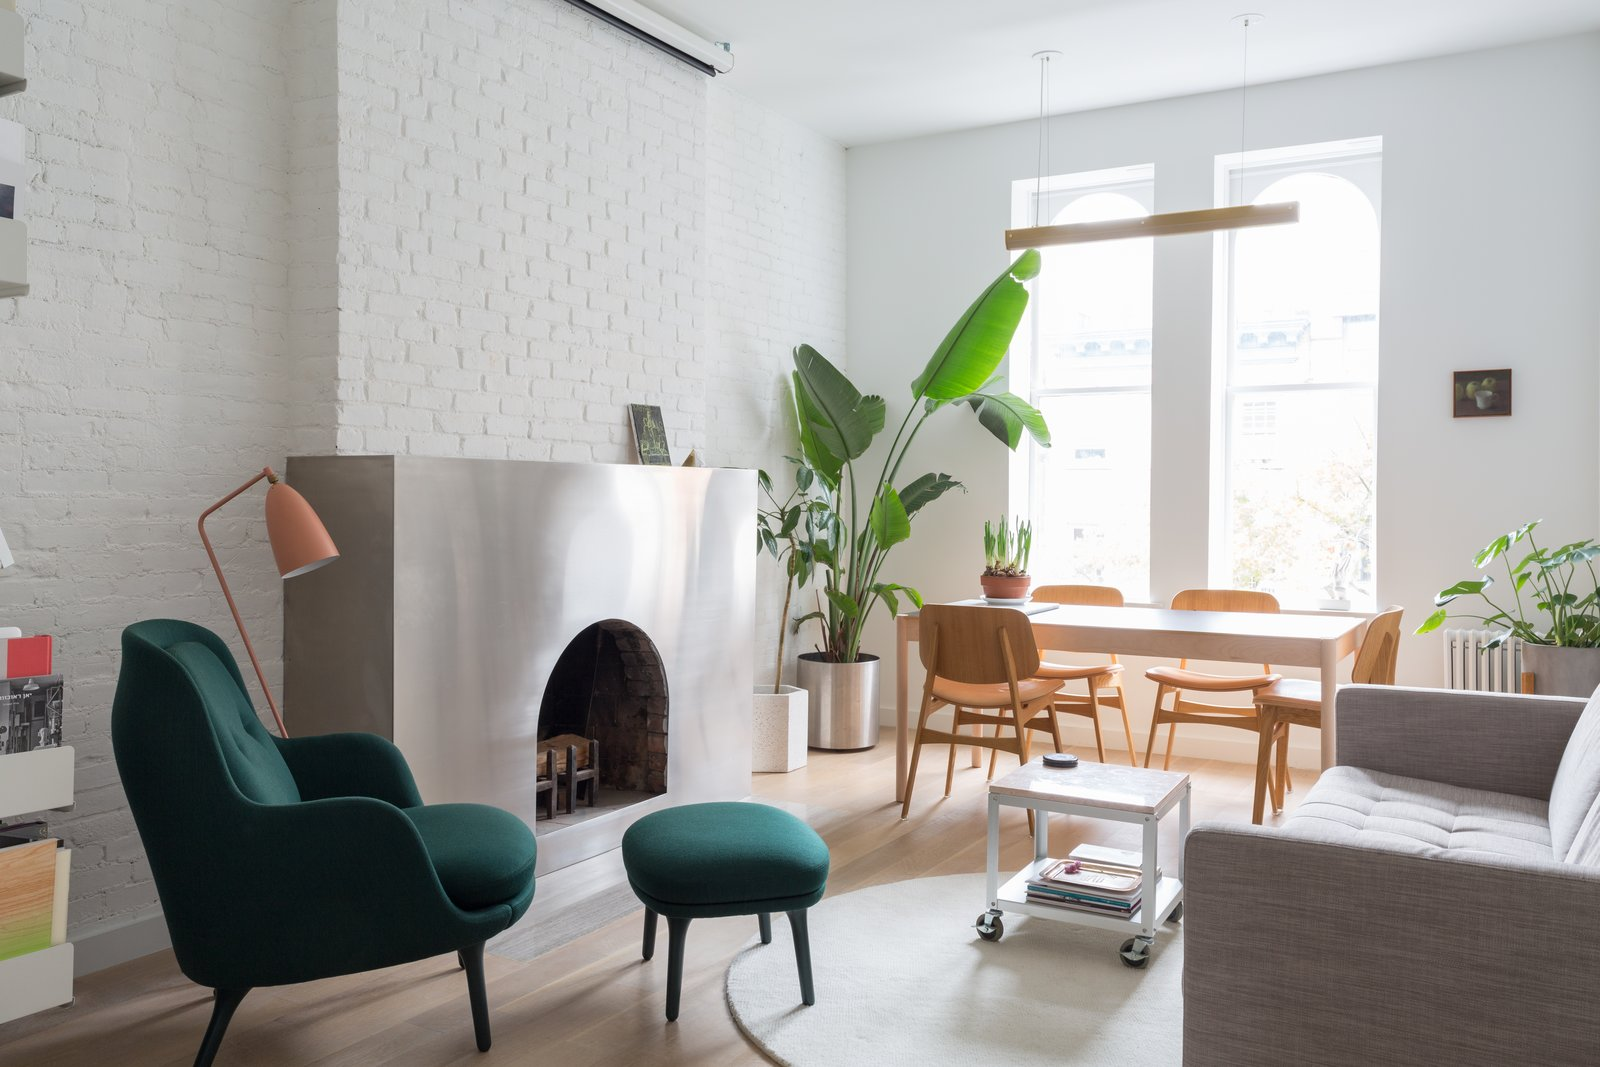 Vivid Accent Colors Turn This Tiny Abode Into a Dreamy Oasis - Dwell